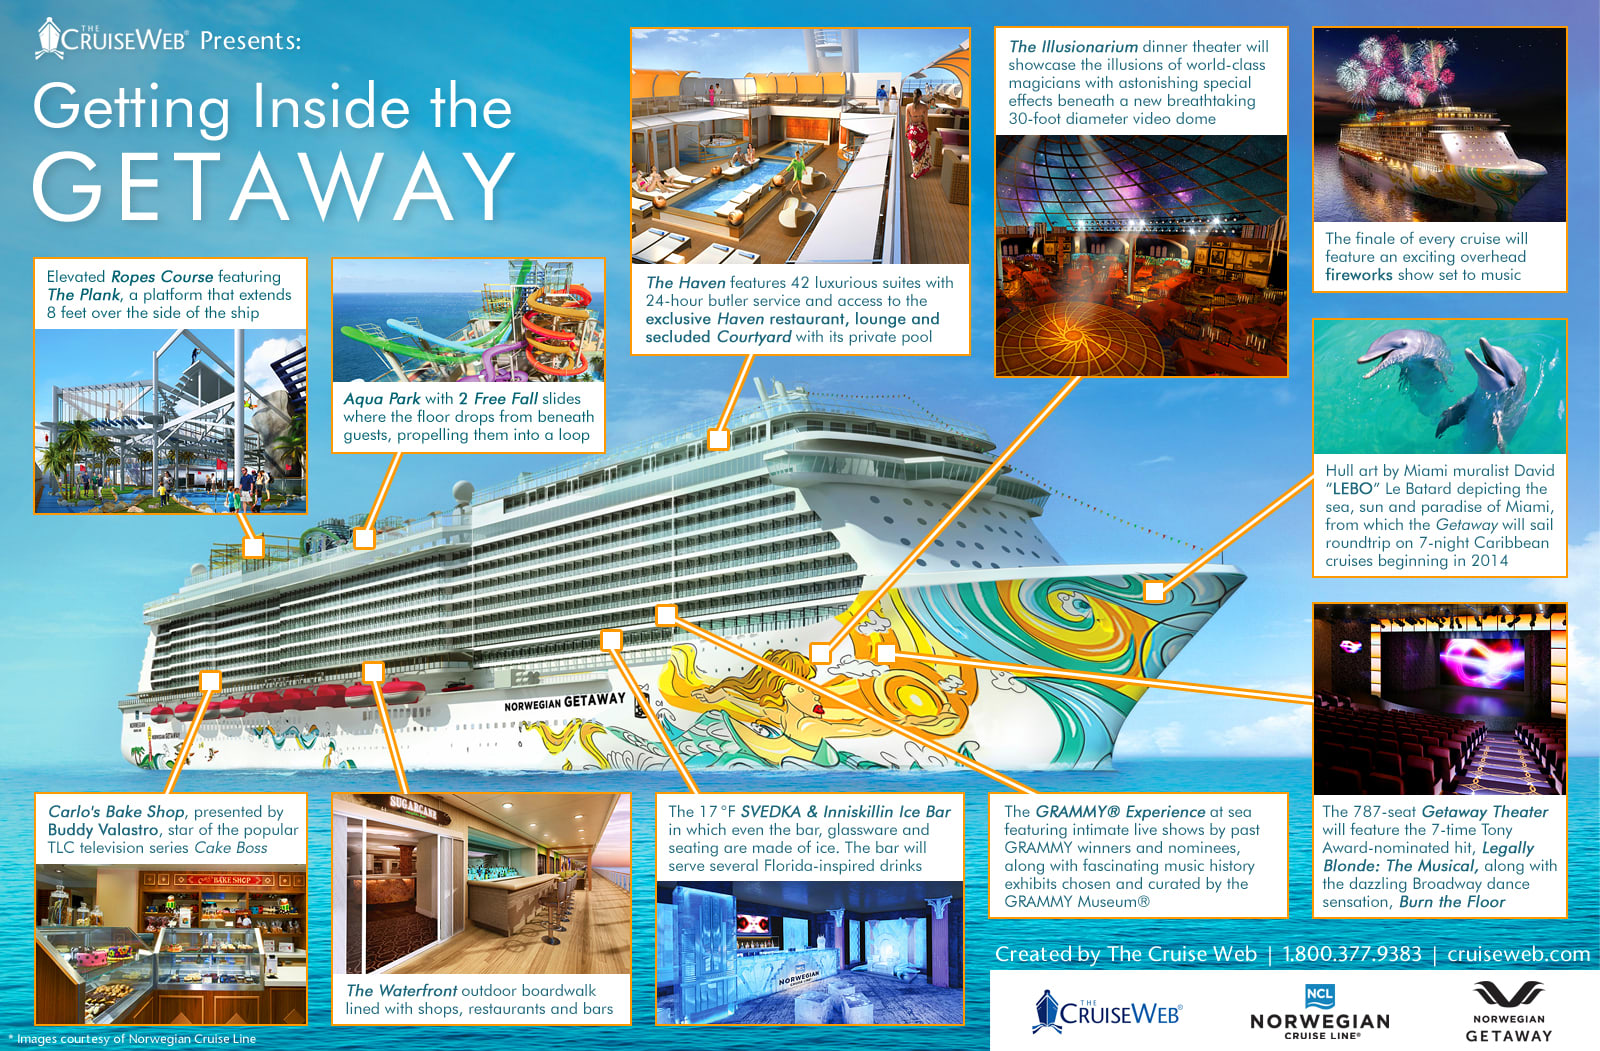 Getting Inside the Norwegian Getaway: An Infographic